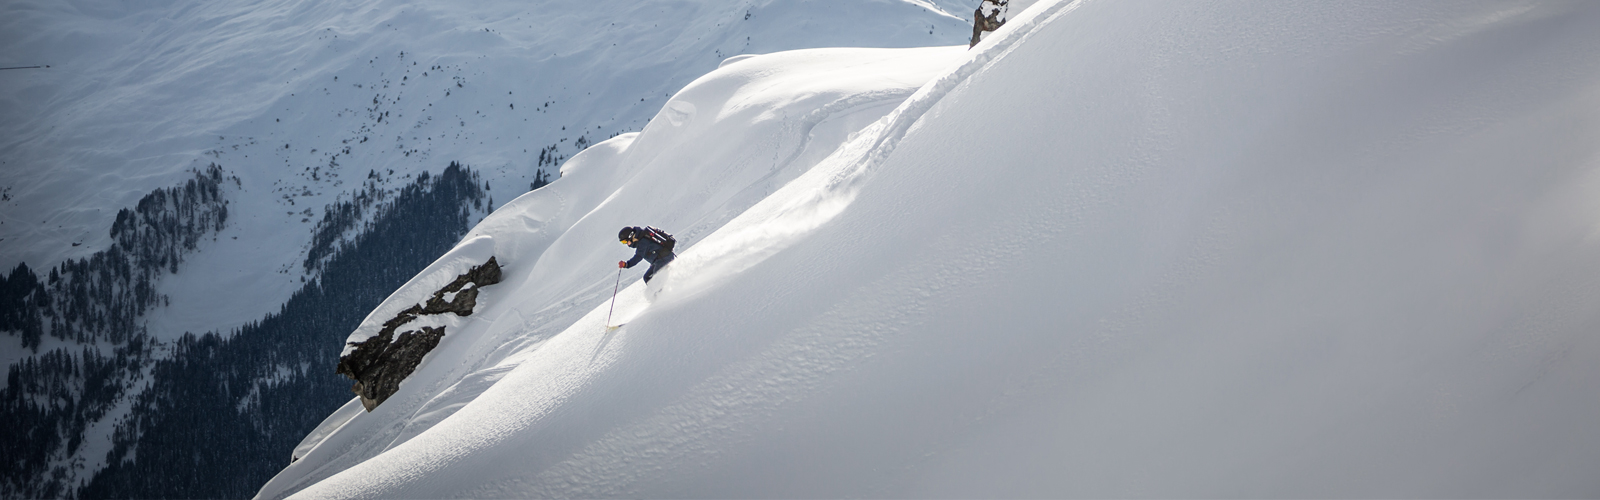 Emma-Freeride-Element-Ski-School-Verbier